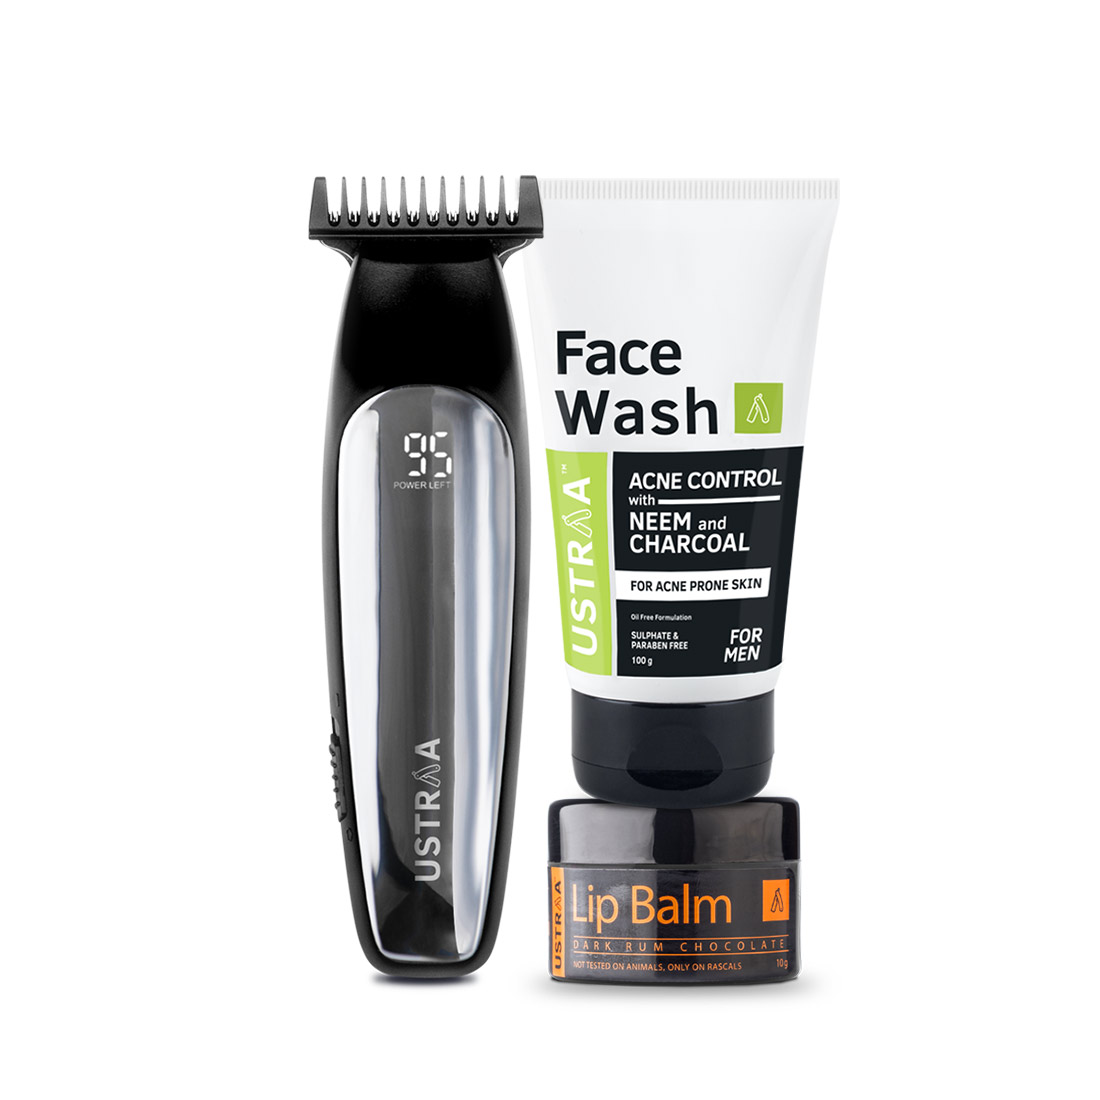 Ustraa Chrome - Lithium Powered Beard Trimmer, Face Wash and Lip Balm